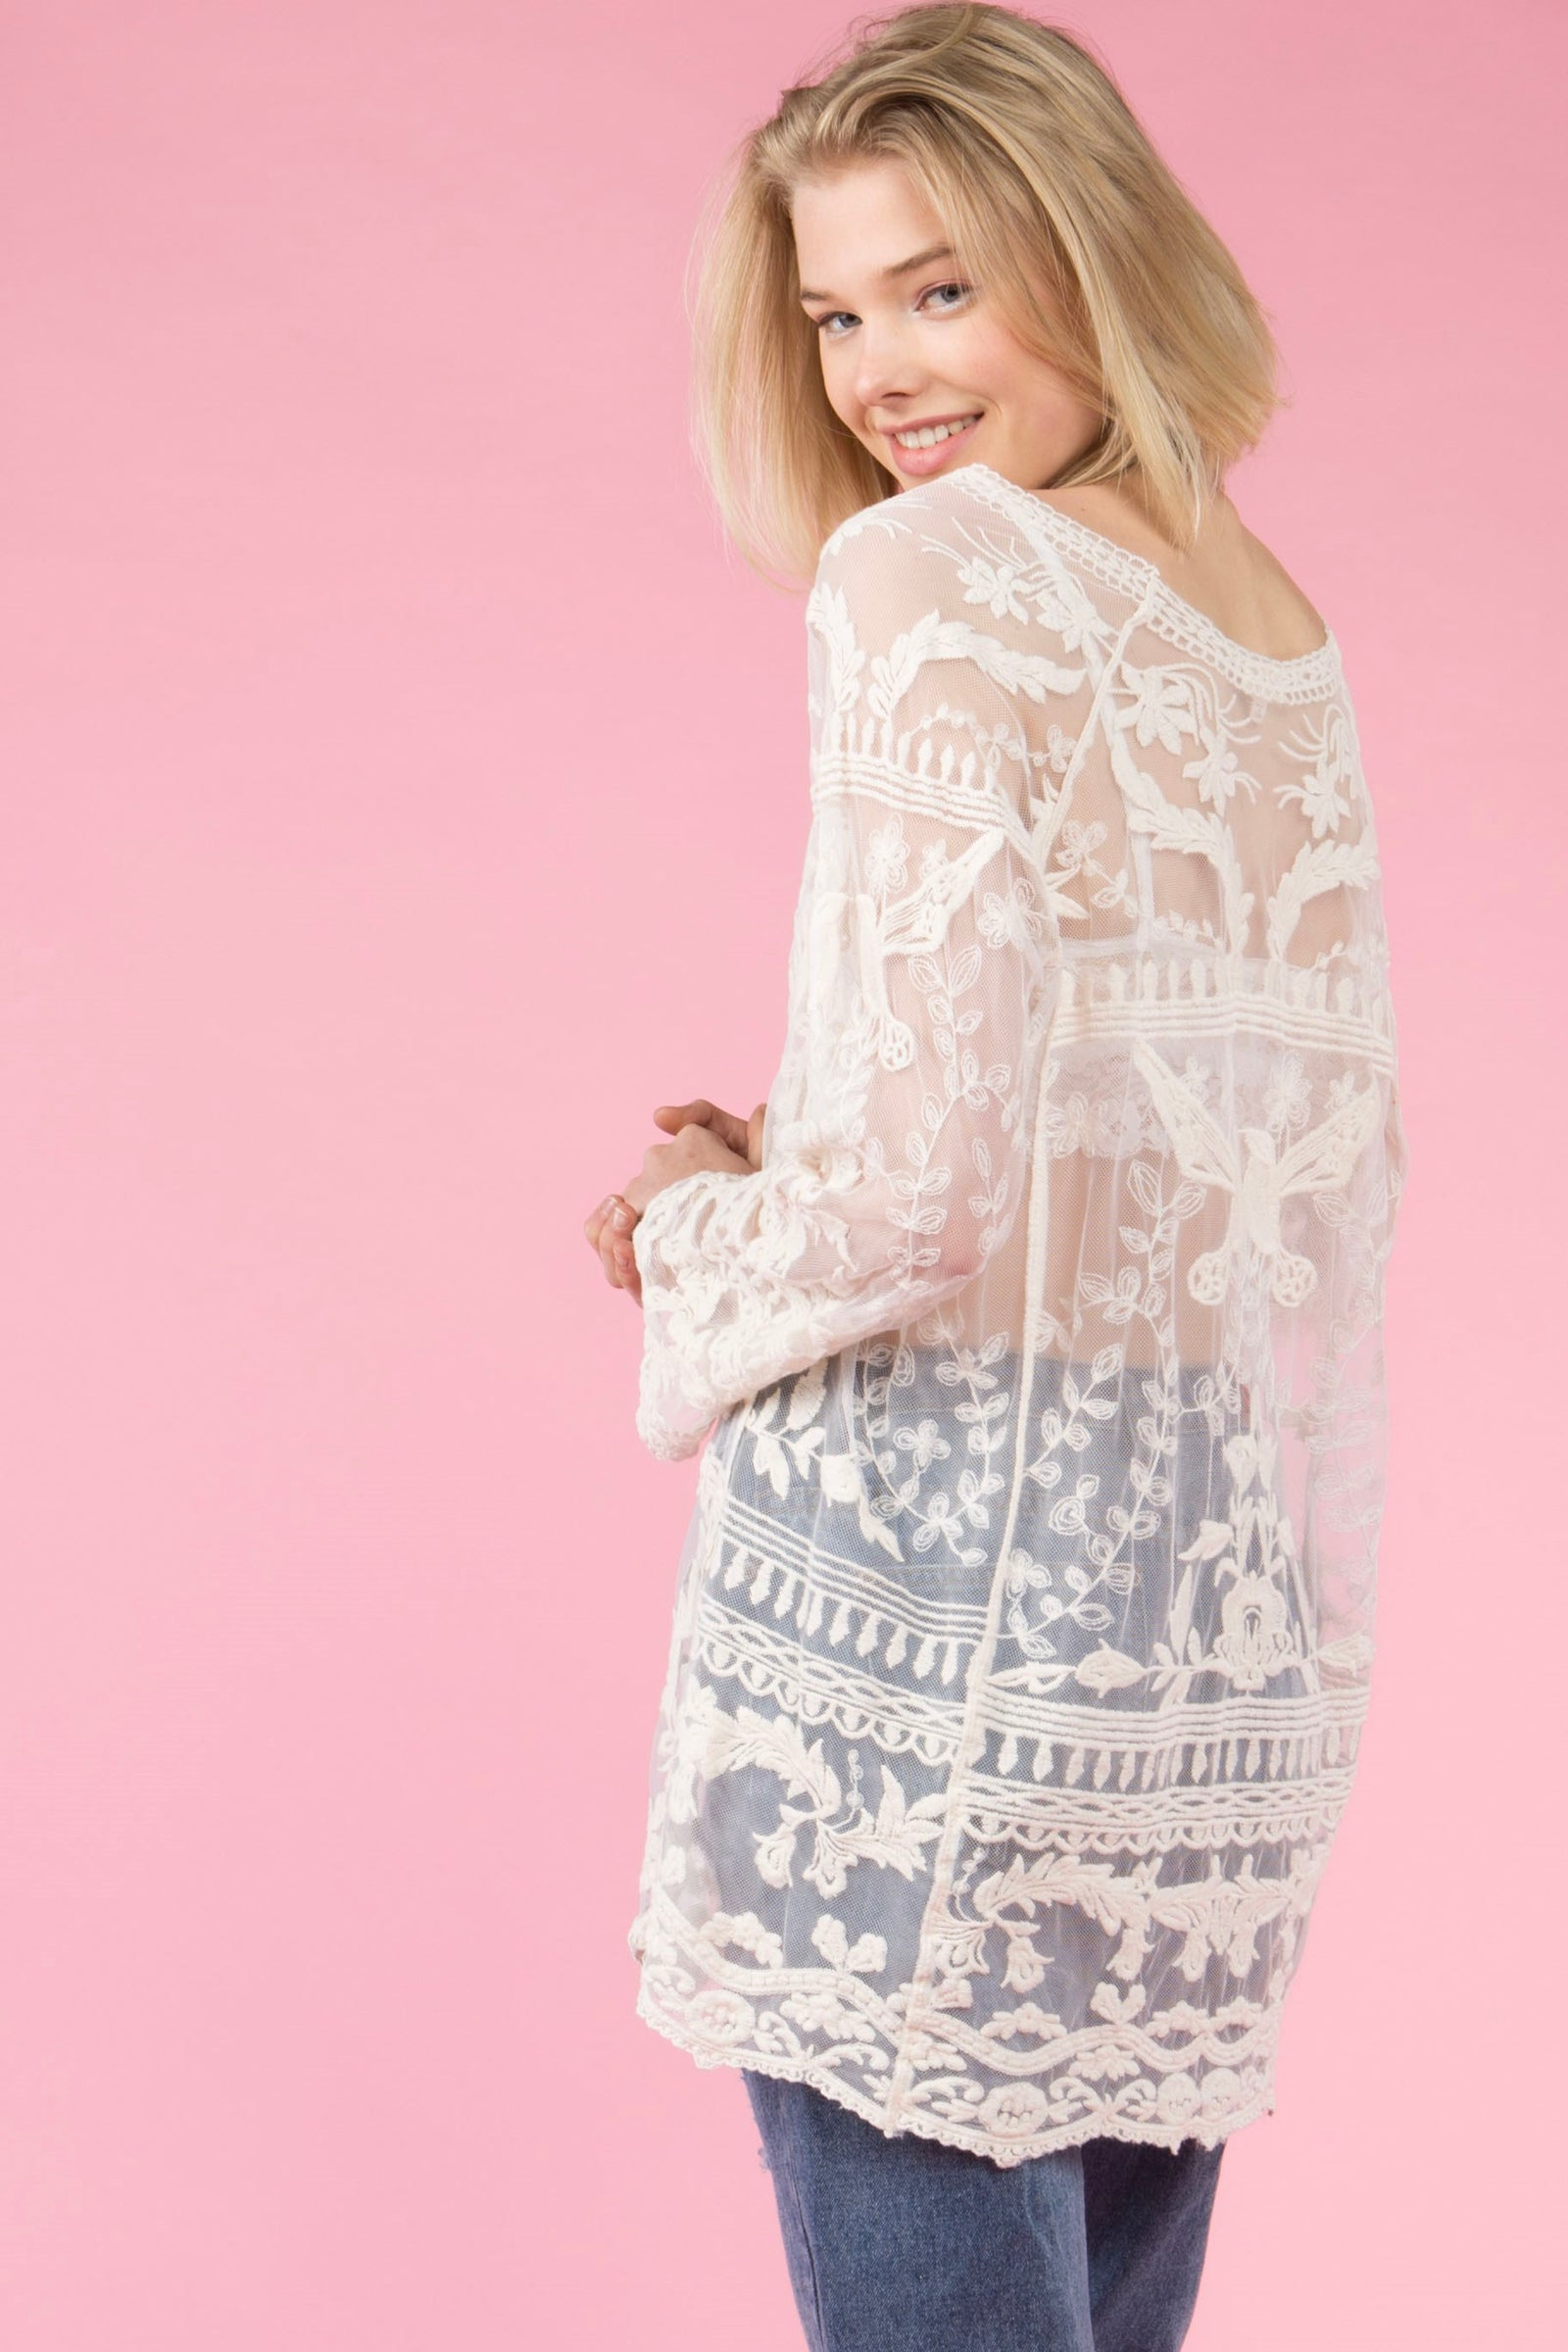 Back view young woman wearing natural colored lace tunic top with wide boat neckline